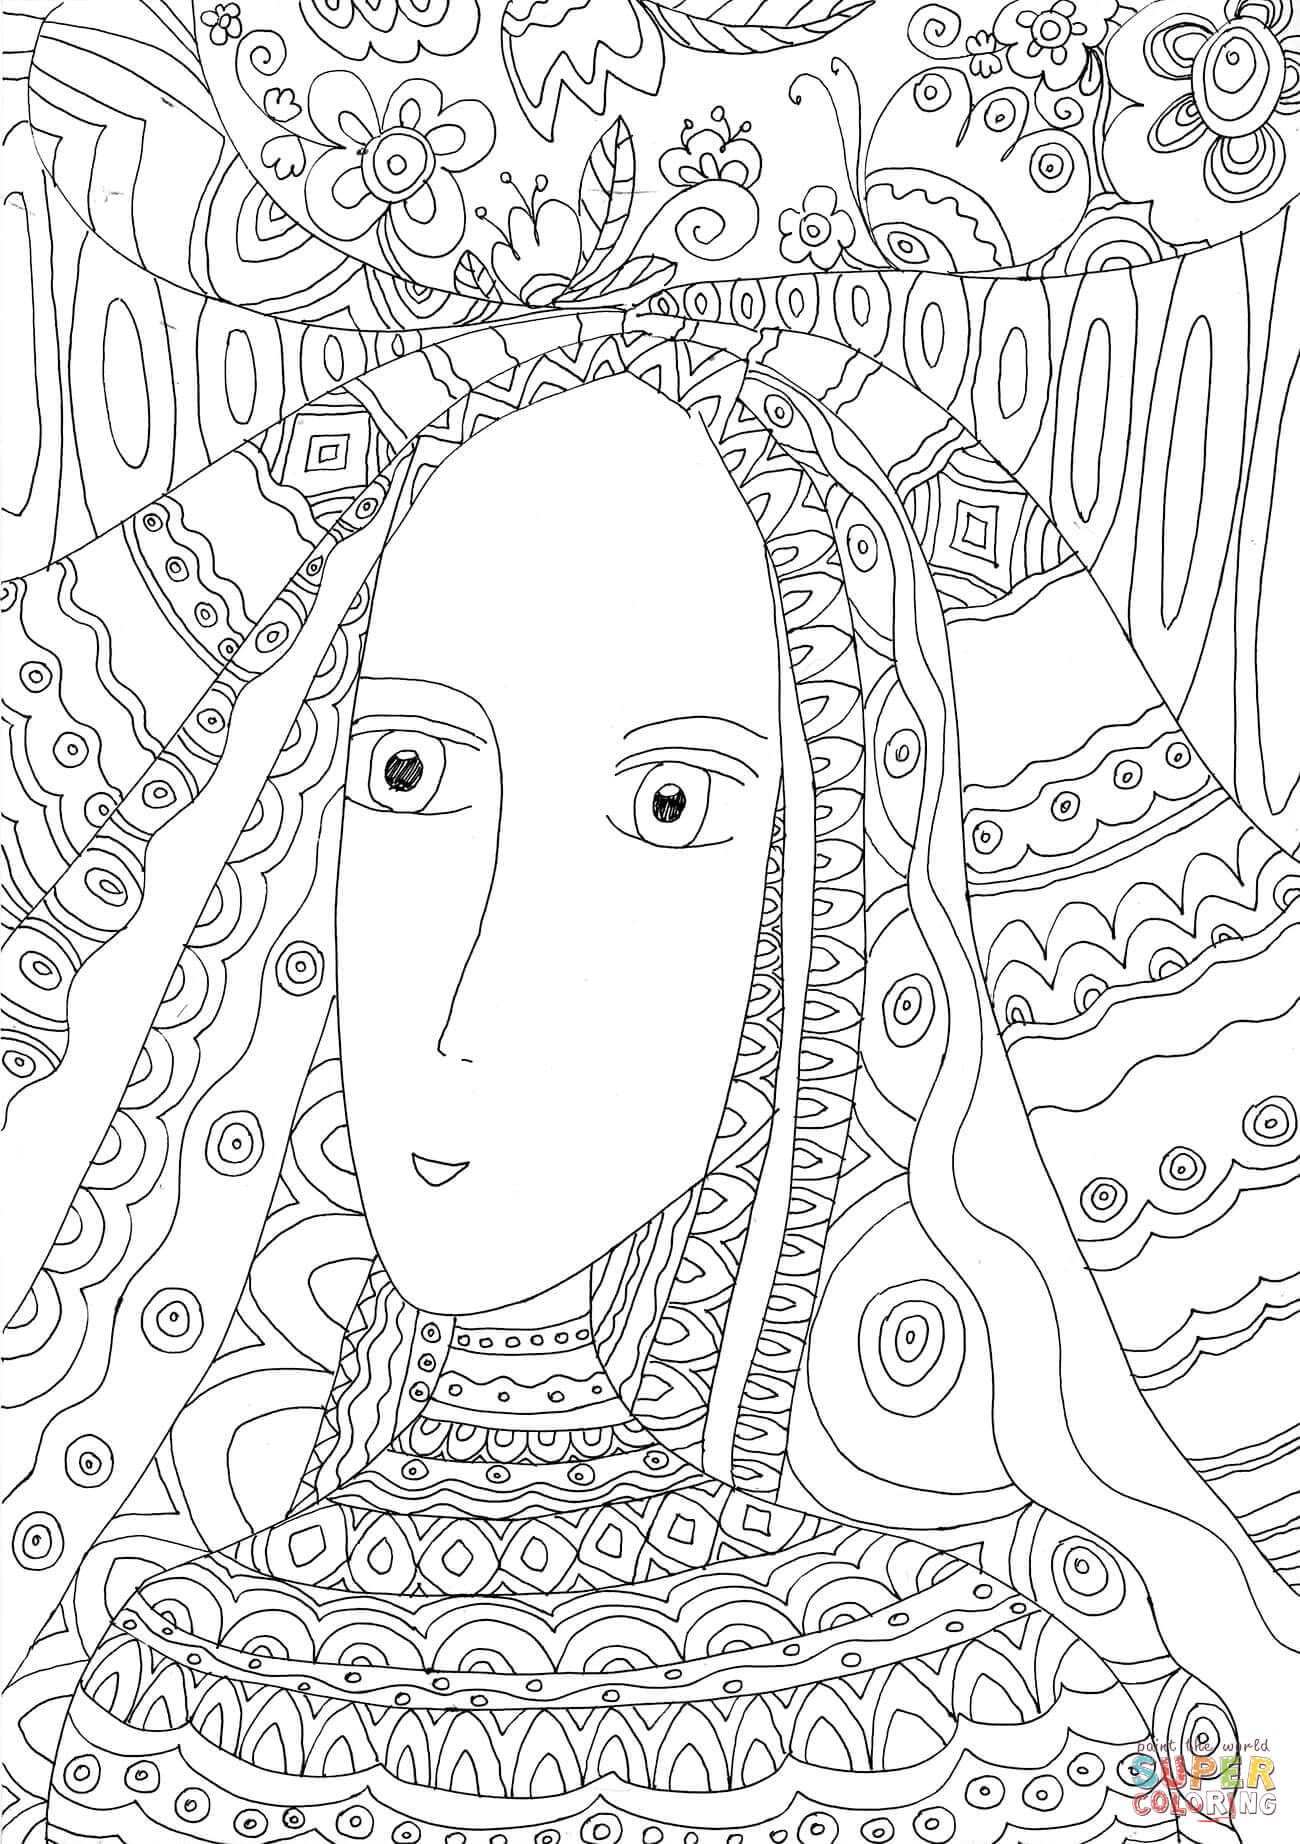 colouring in pictures for girls i am just not a simple girl coloring page free printable girls pictures in colouring for